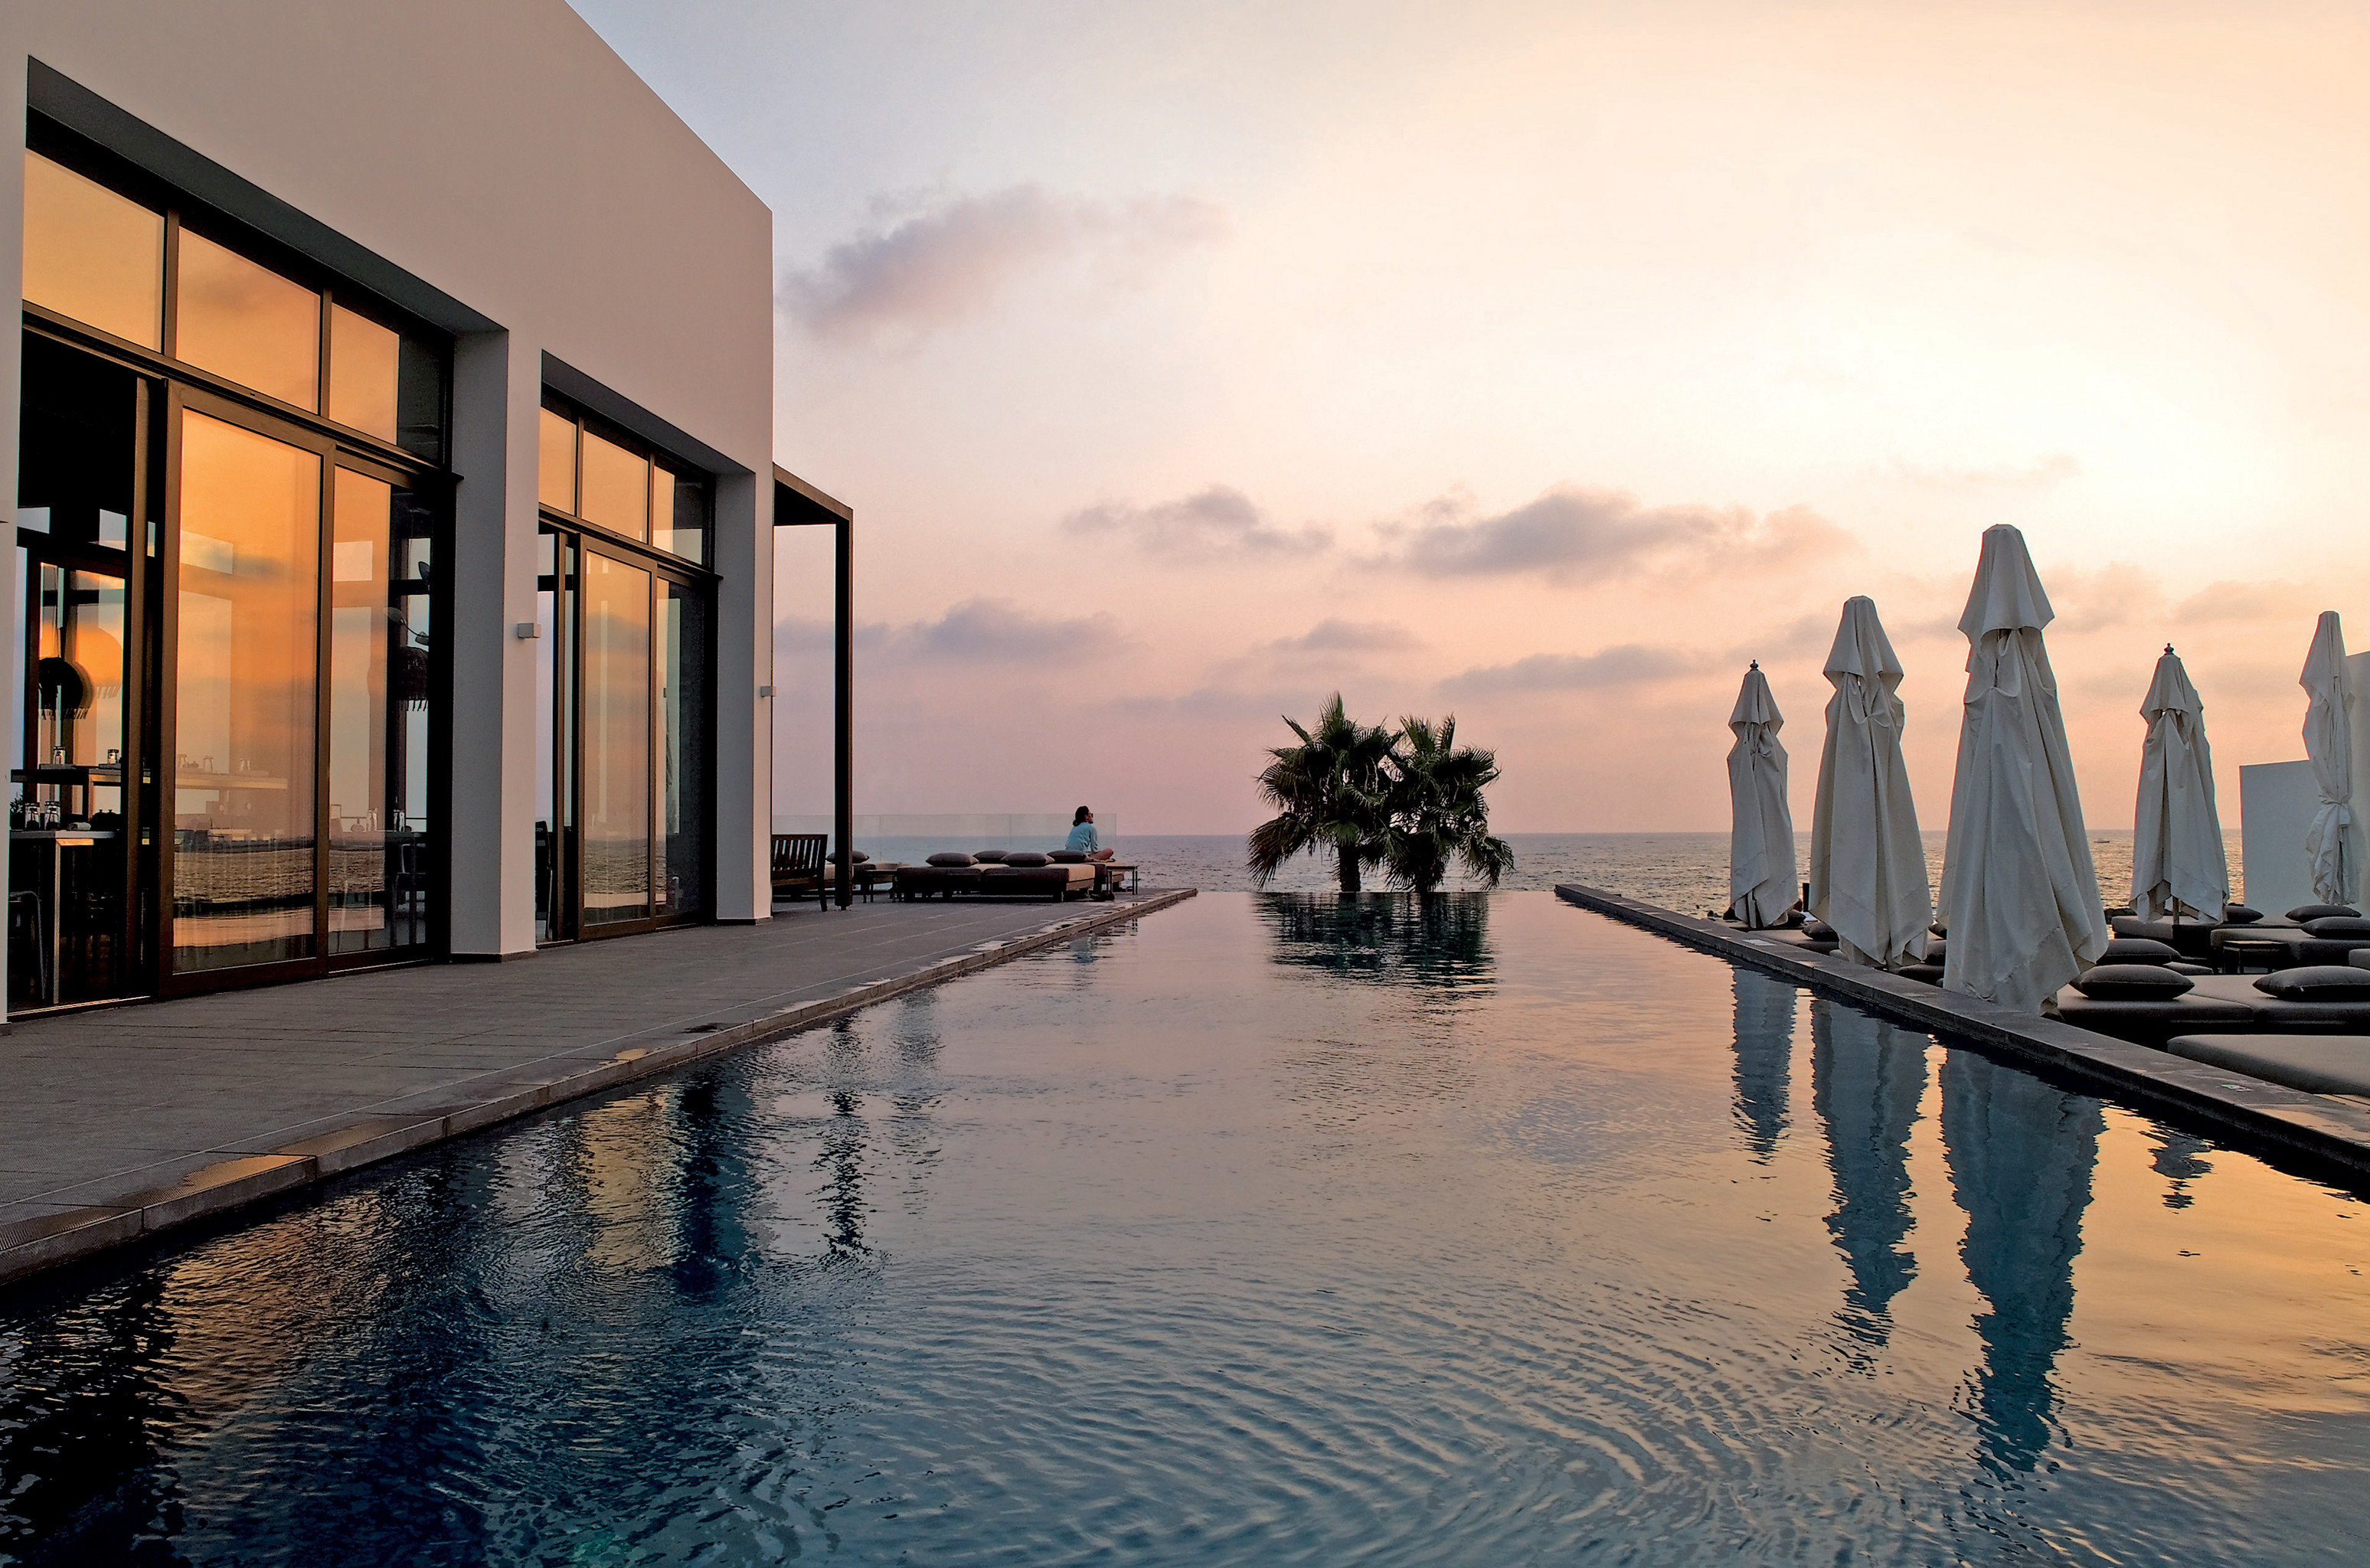 Elegant Family Island Patio Pool Scenic views Sunset Waterfront water sky Boat morning evening Lake dusk cityscape sunlight dock waterway day